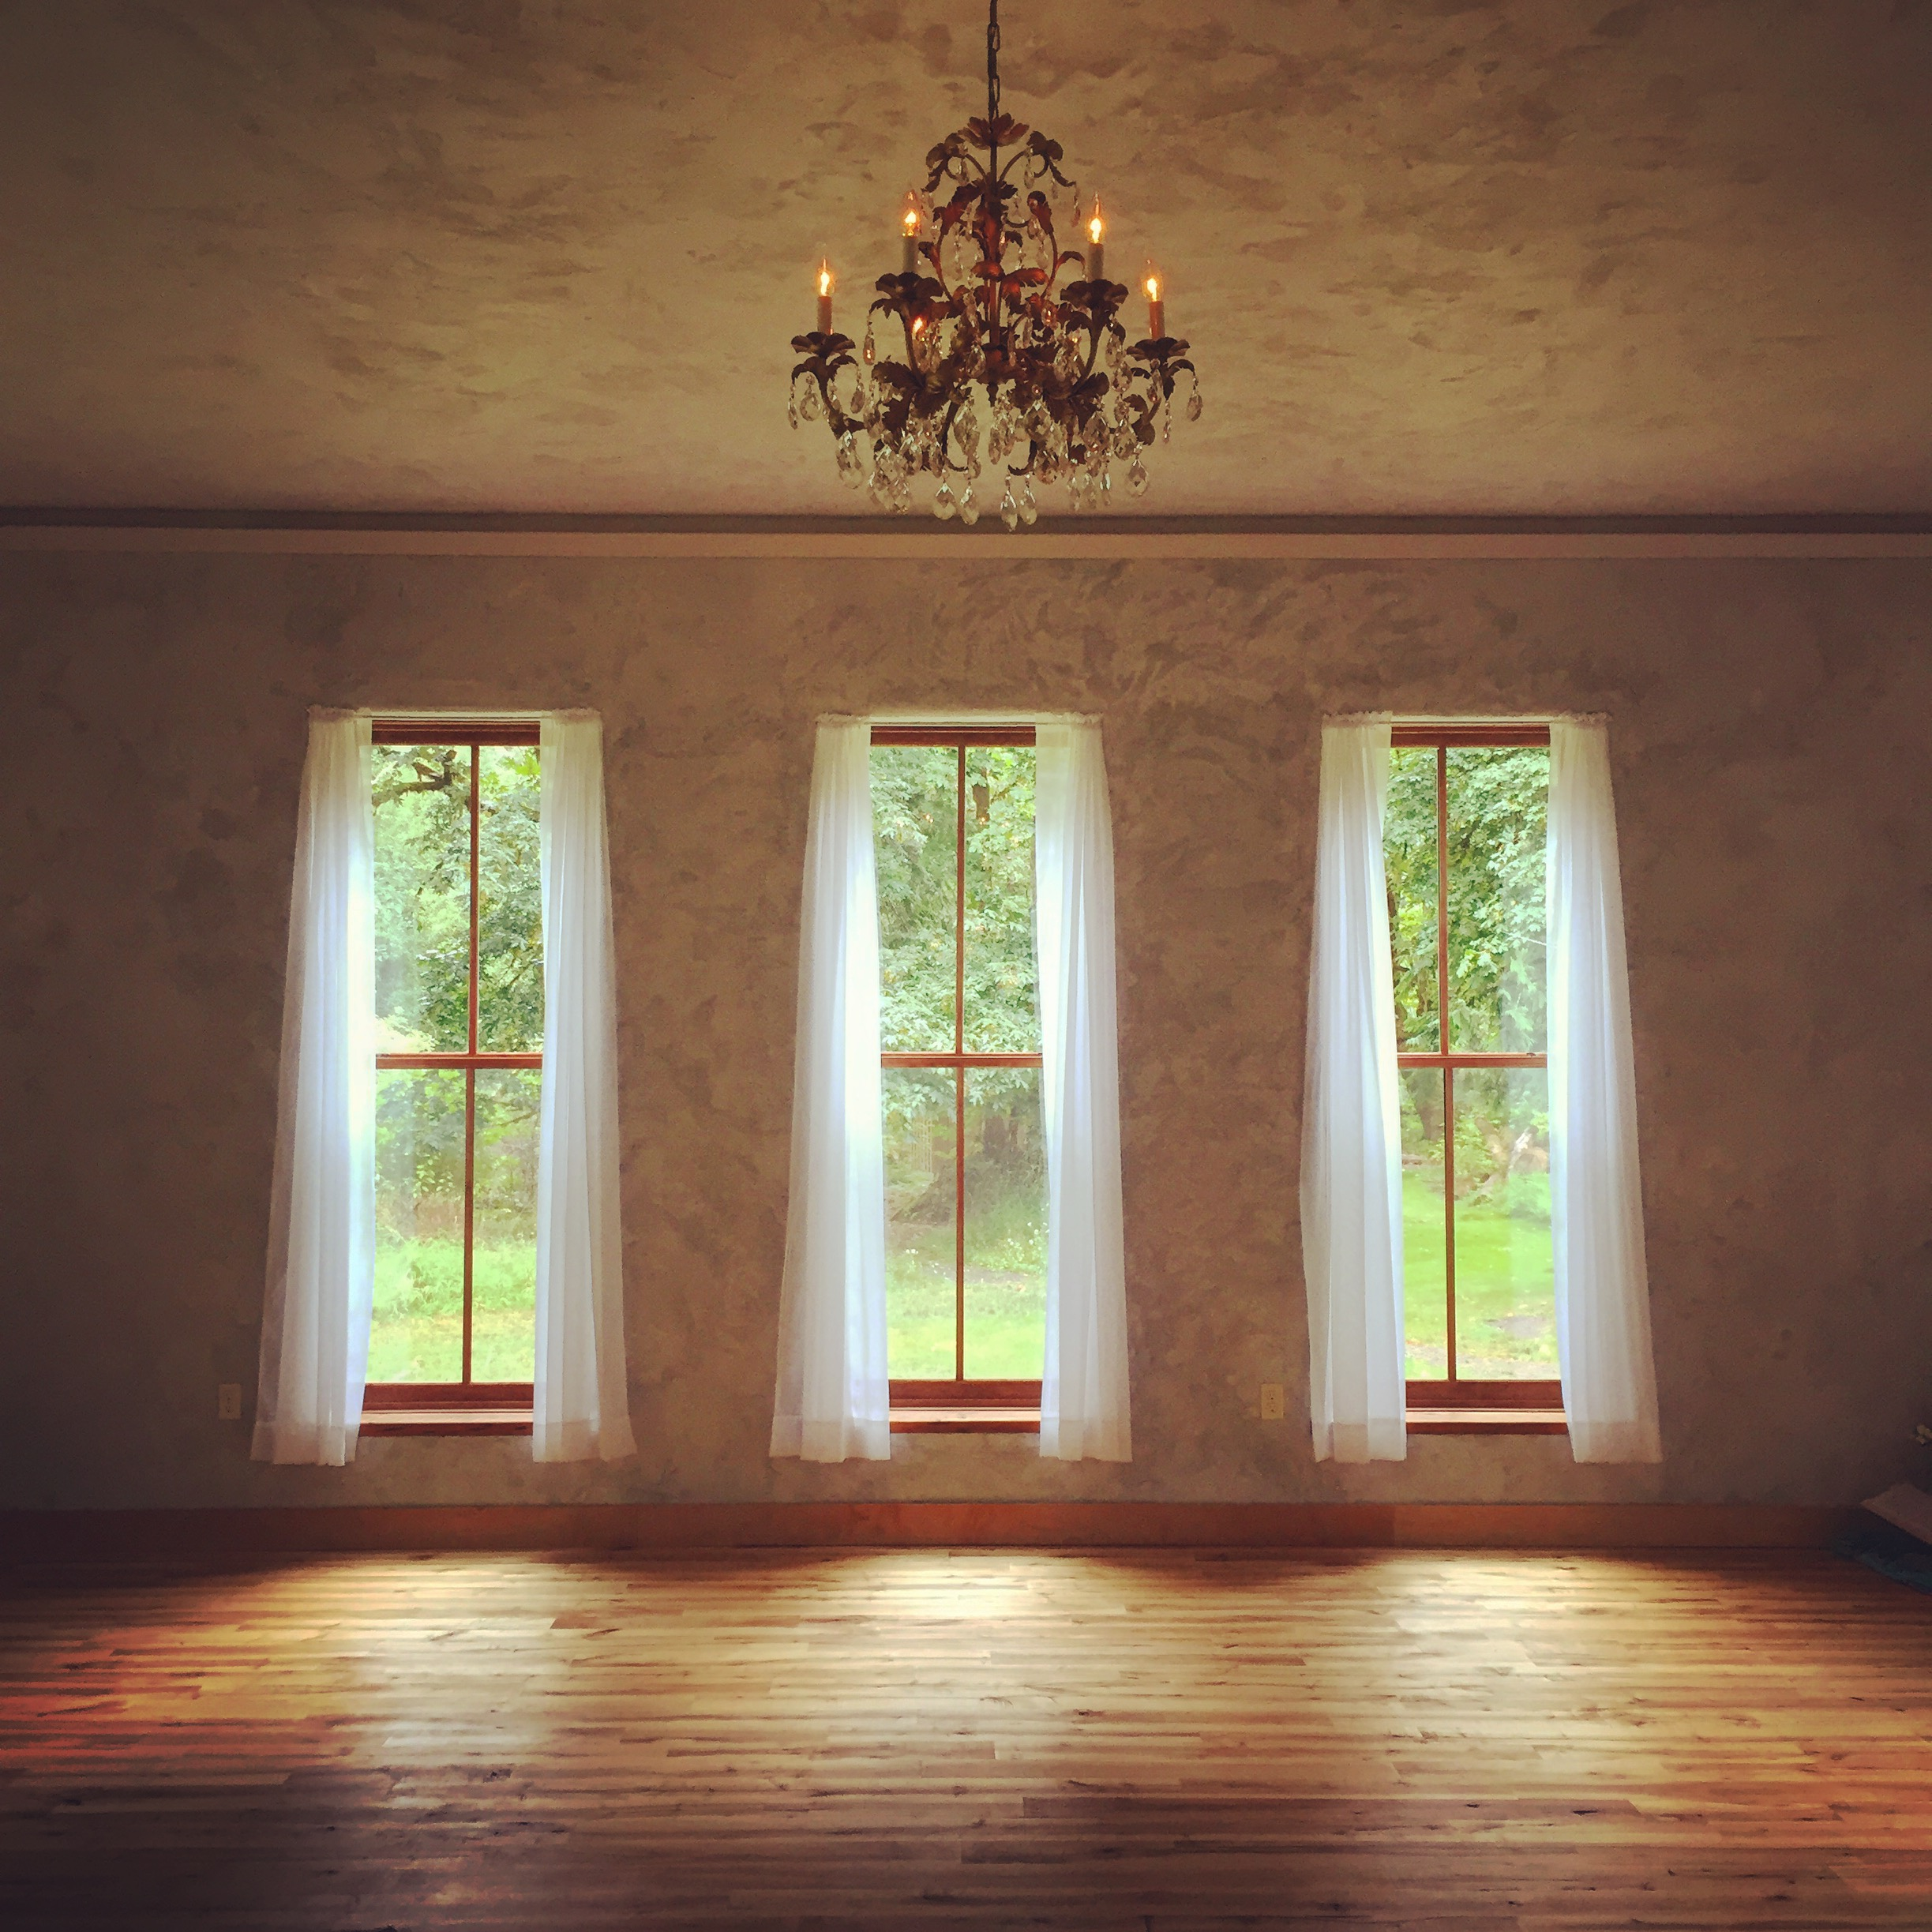 the studio at the YogaFarm... and its windows to the soul....